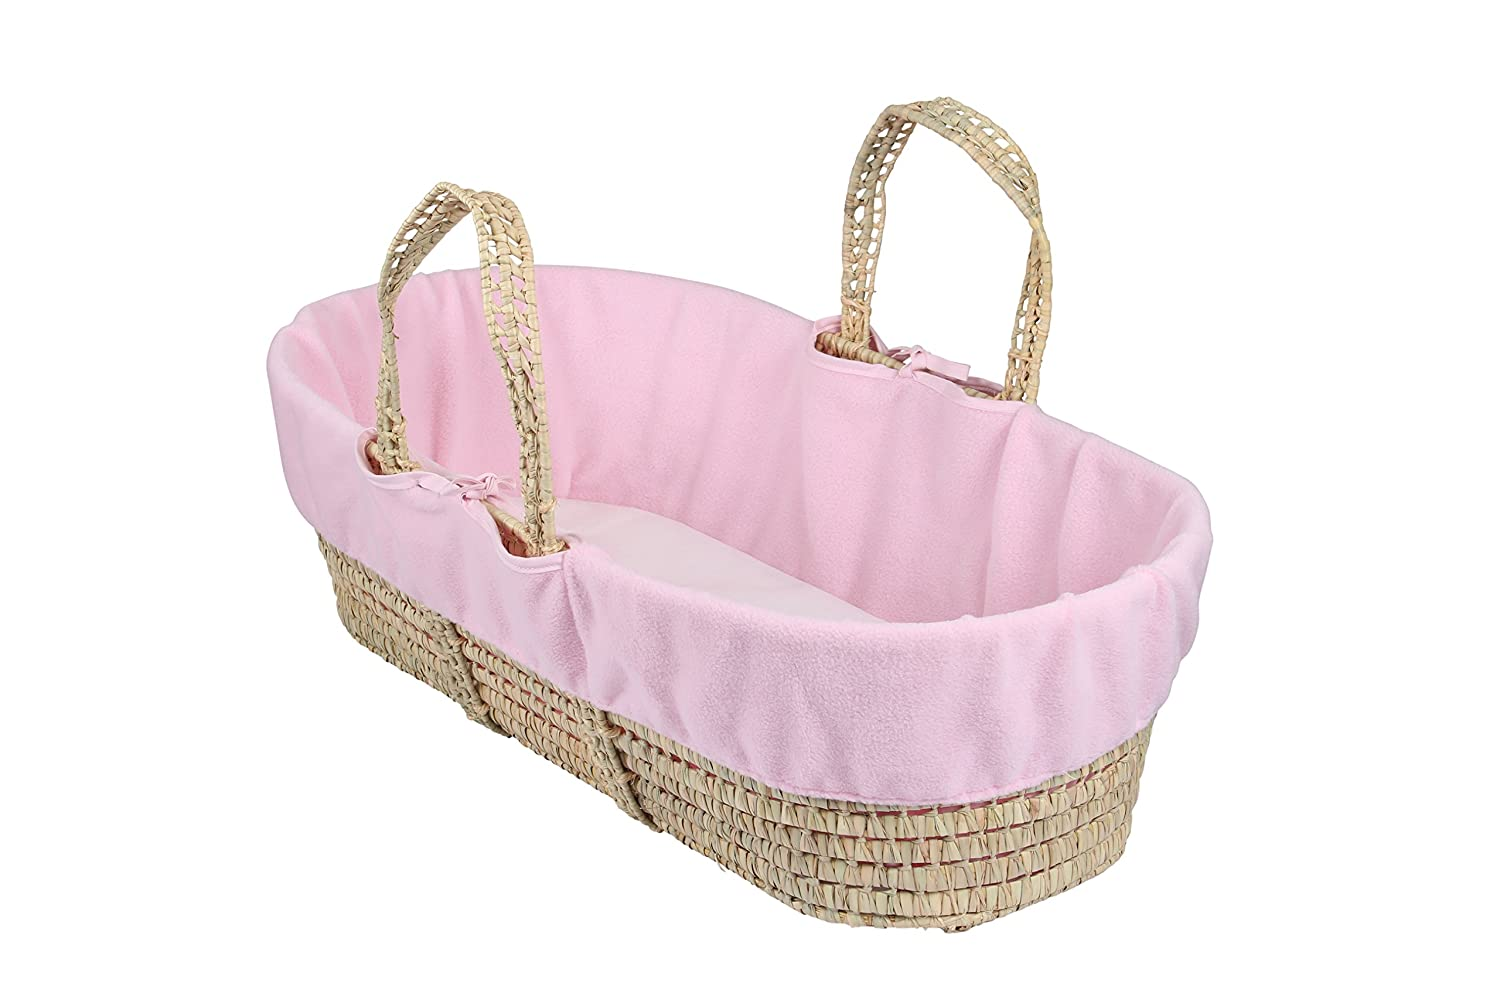 Clair de Lune Fleece Liner/Dressing for Moses/Wicker Basket (Pink) CL5533P